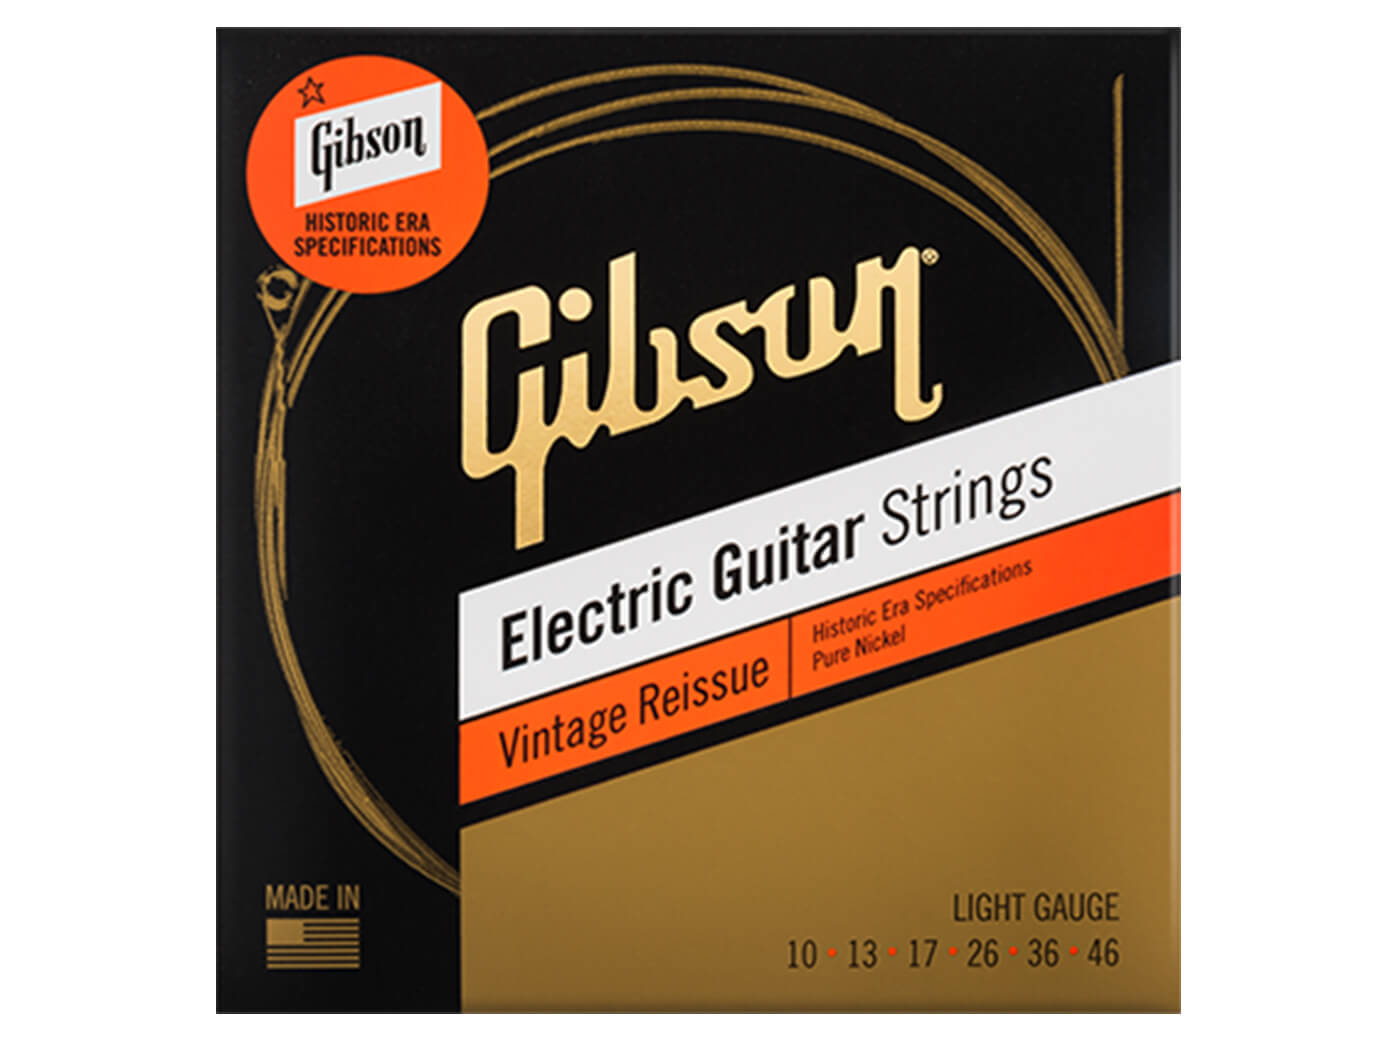 Gibson Vintage Reissue electric guitar strings light gauge